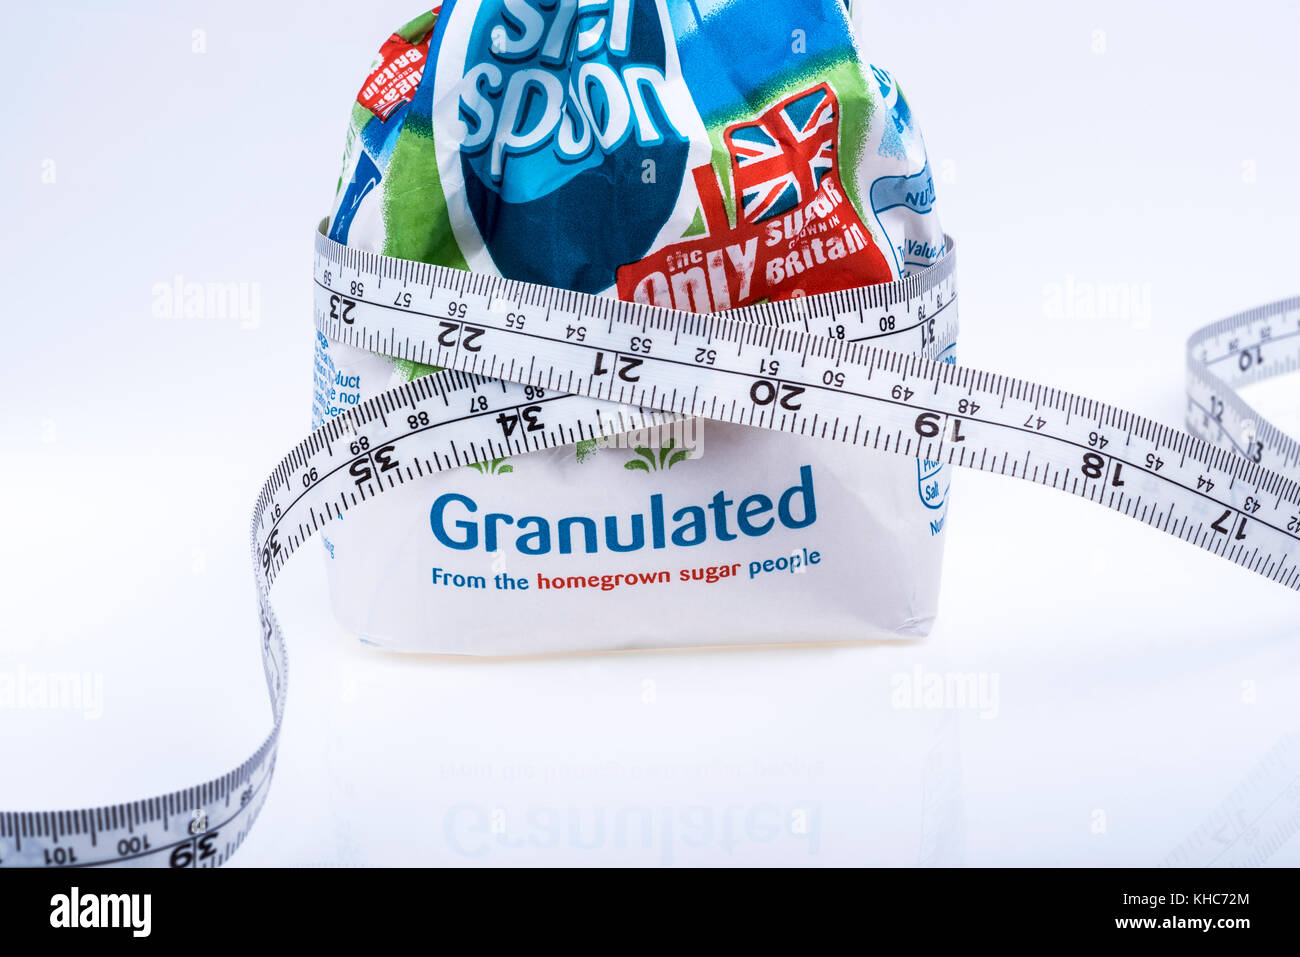 Bag of sugar with tape measure, obesity, unhealthy,diet, fitness. - Stock Image